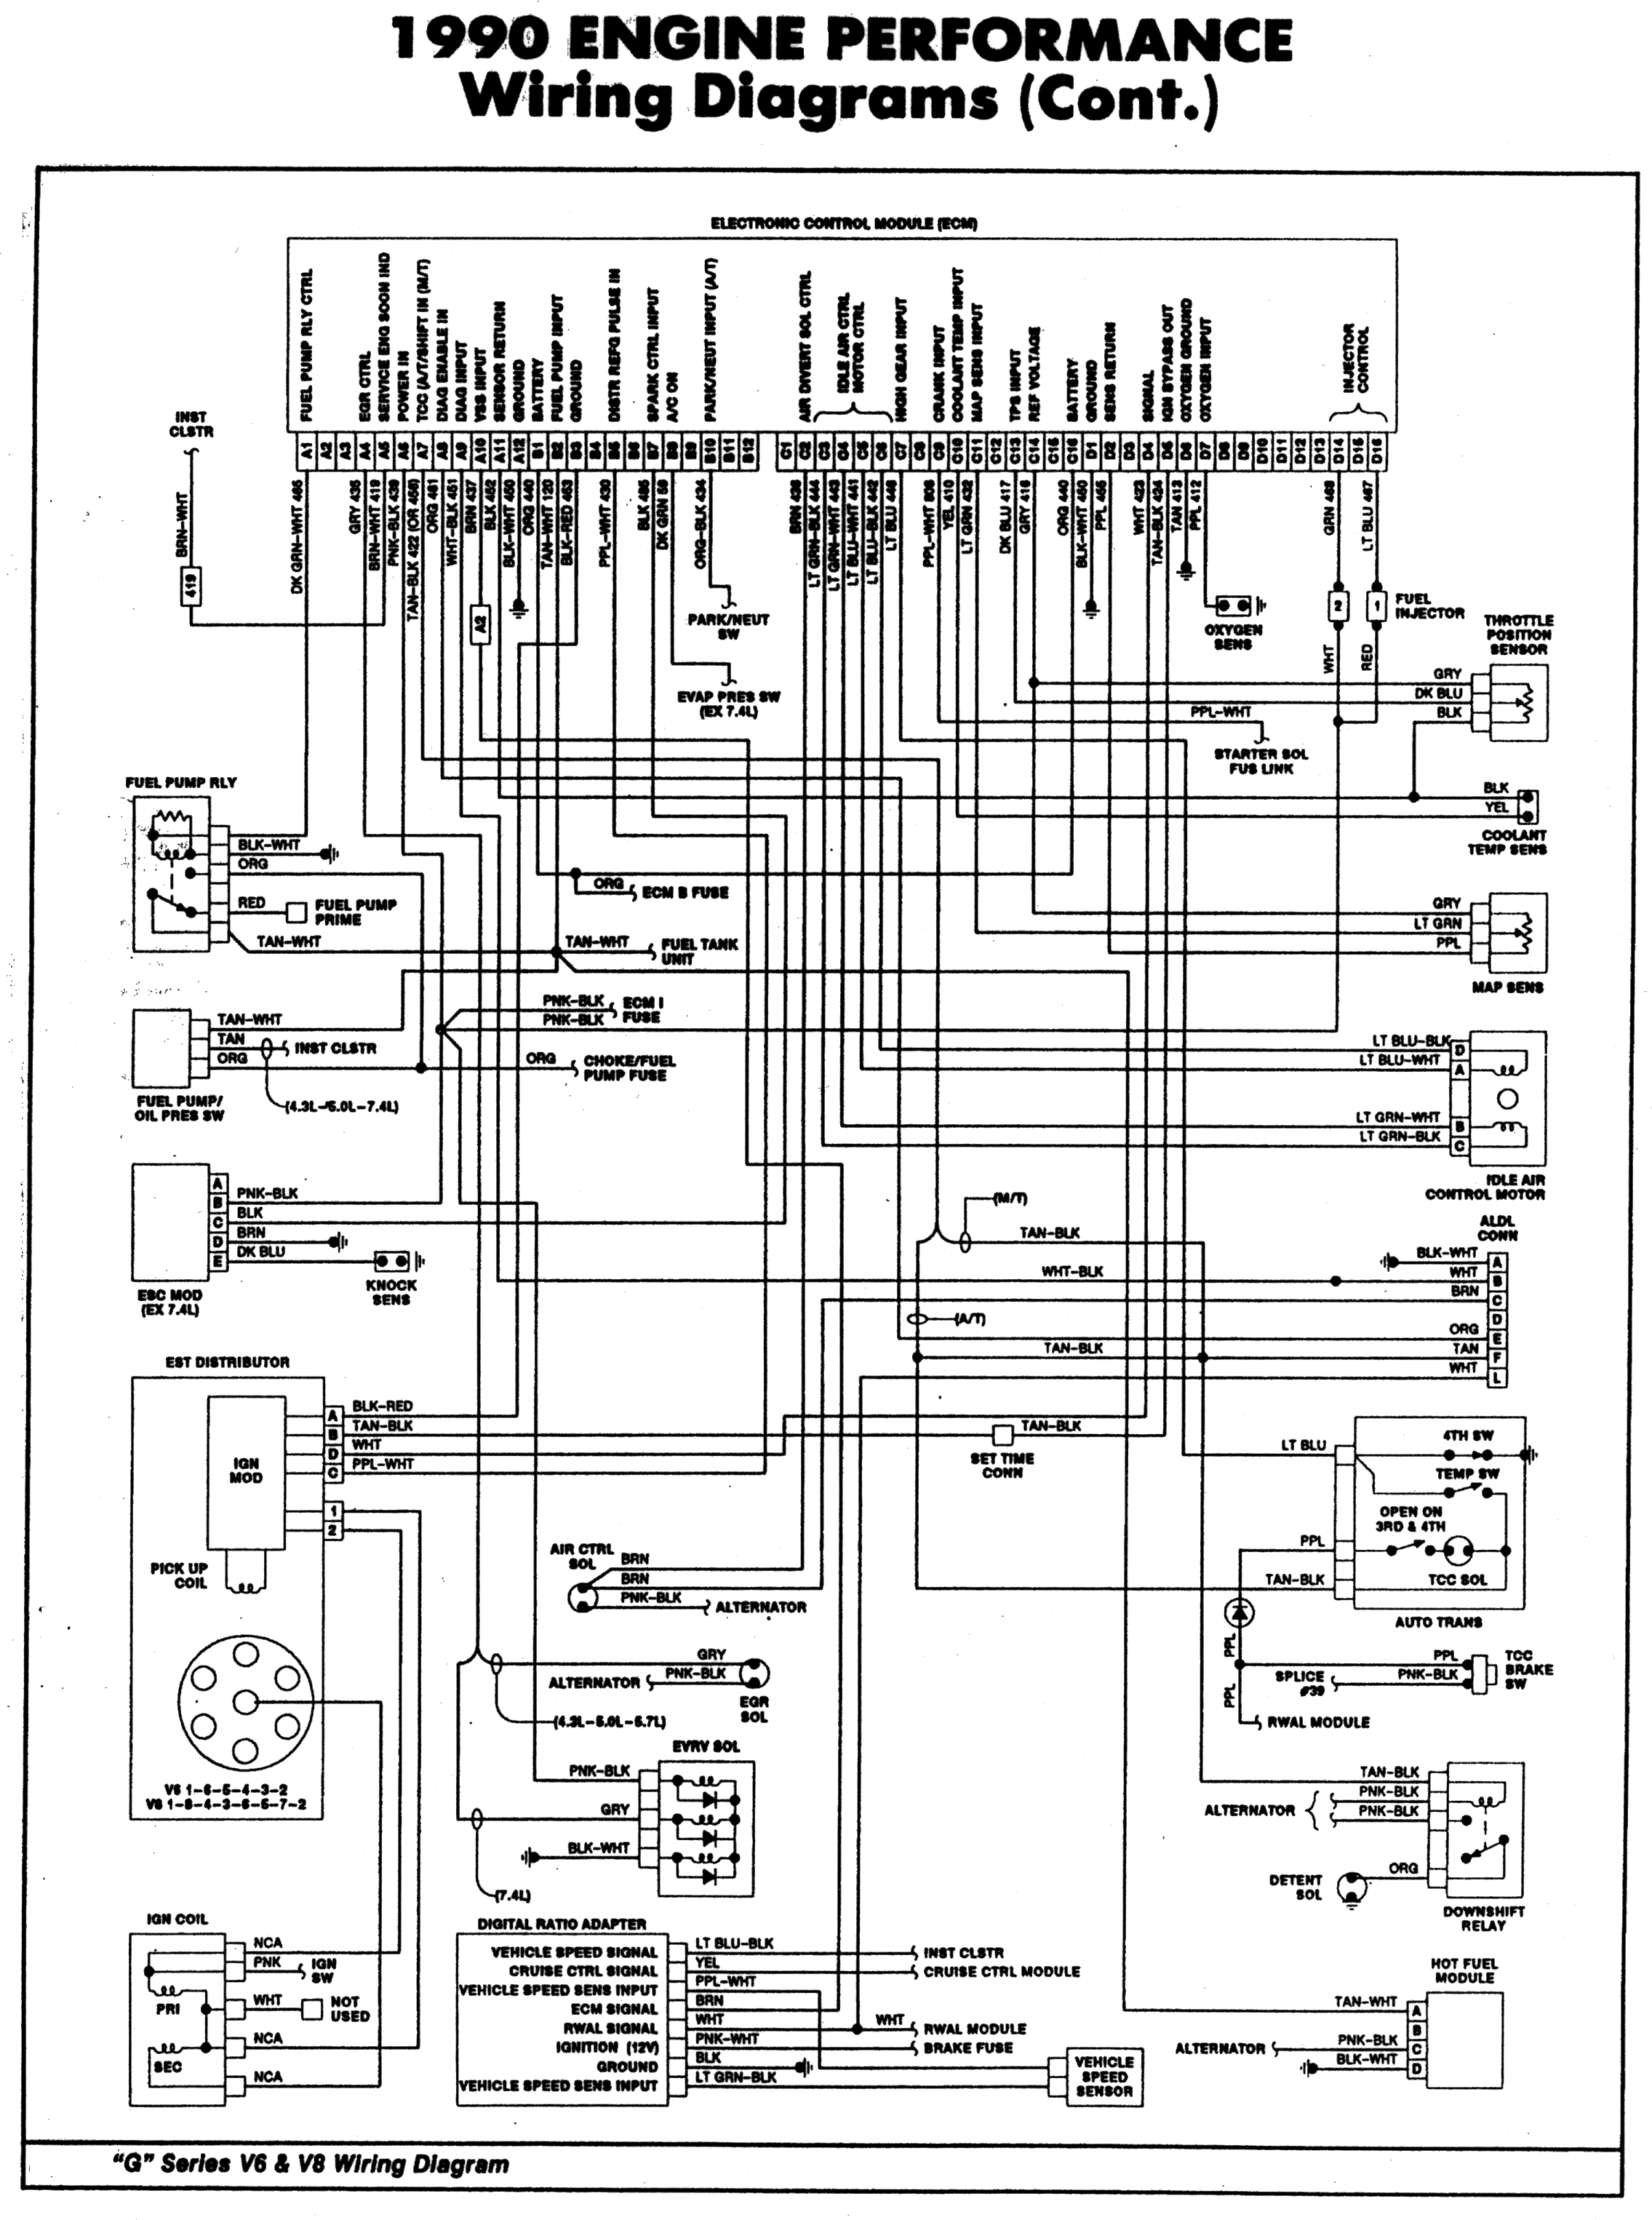 ef37611ed0813a39b0823626ba6b2667 ignitiondiagram 1990 chevy suburban tbi 350 installation land 1990 suburban wiring diagram at bayanpartner.co